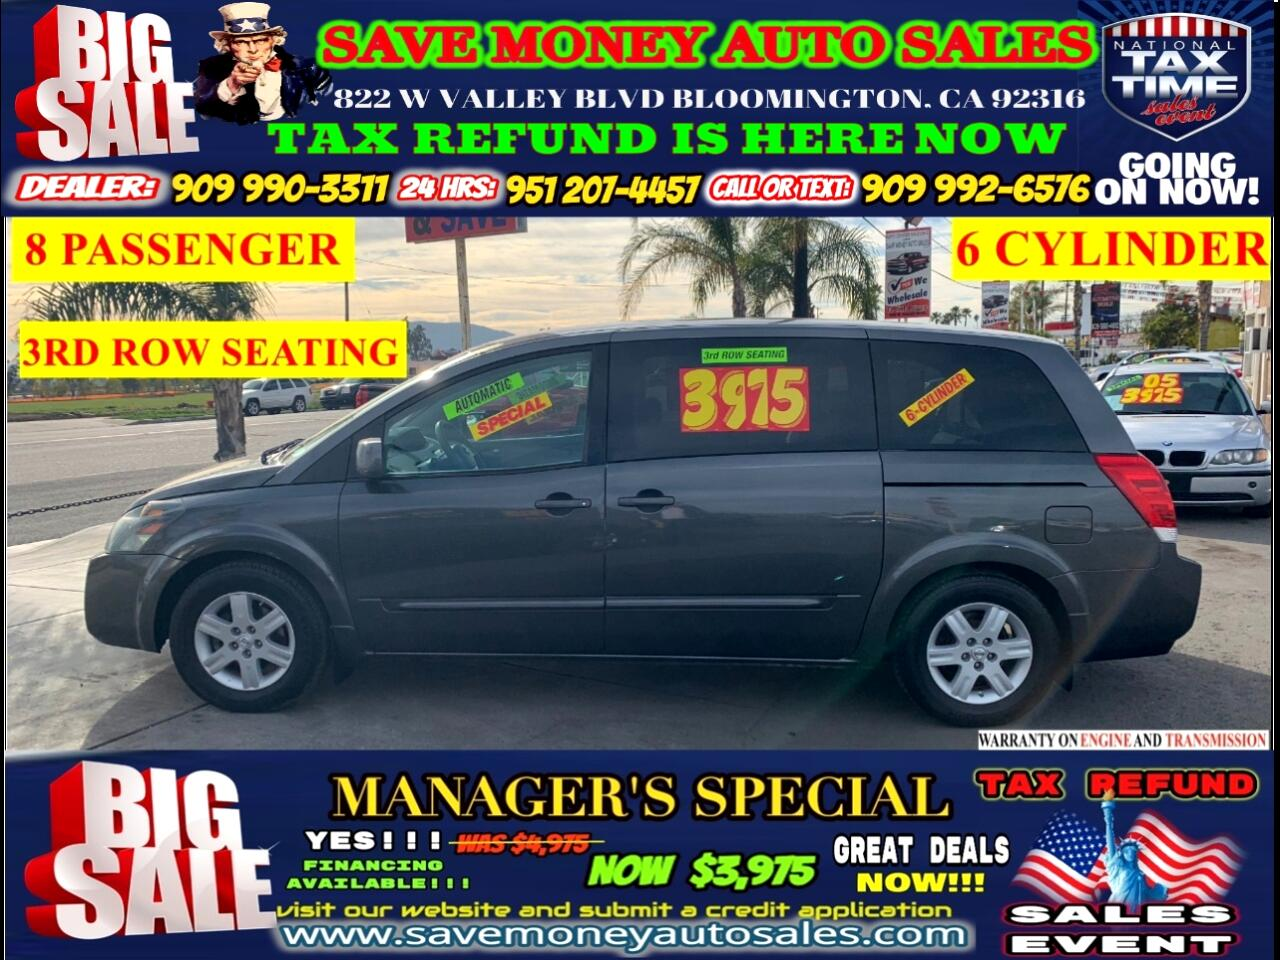 2004 Nissan Quest 3.5 SE> 3RD ROW SEATING> 6 CYLINDER> 8 PASSENGER S